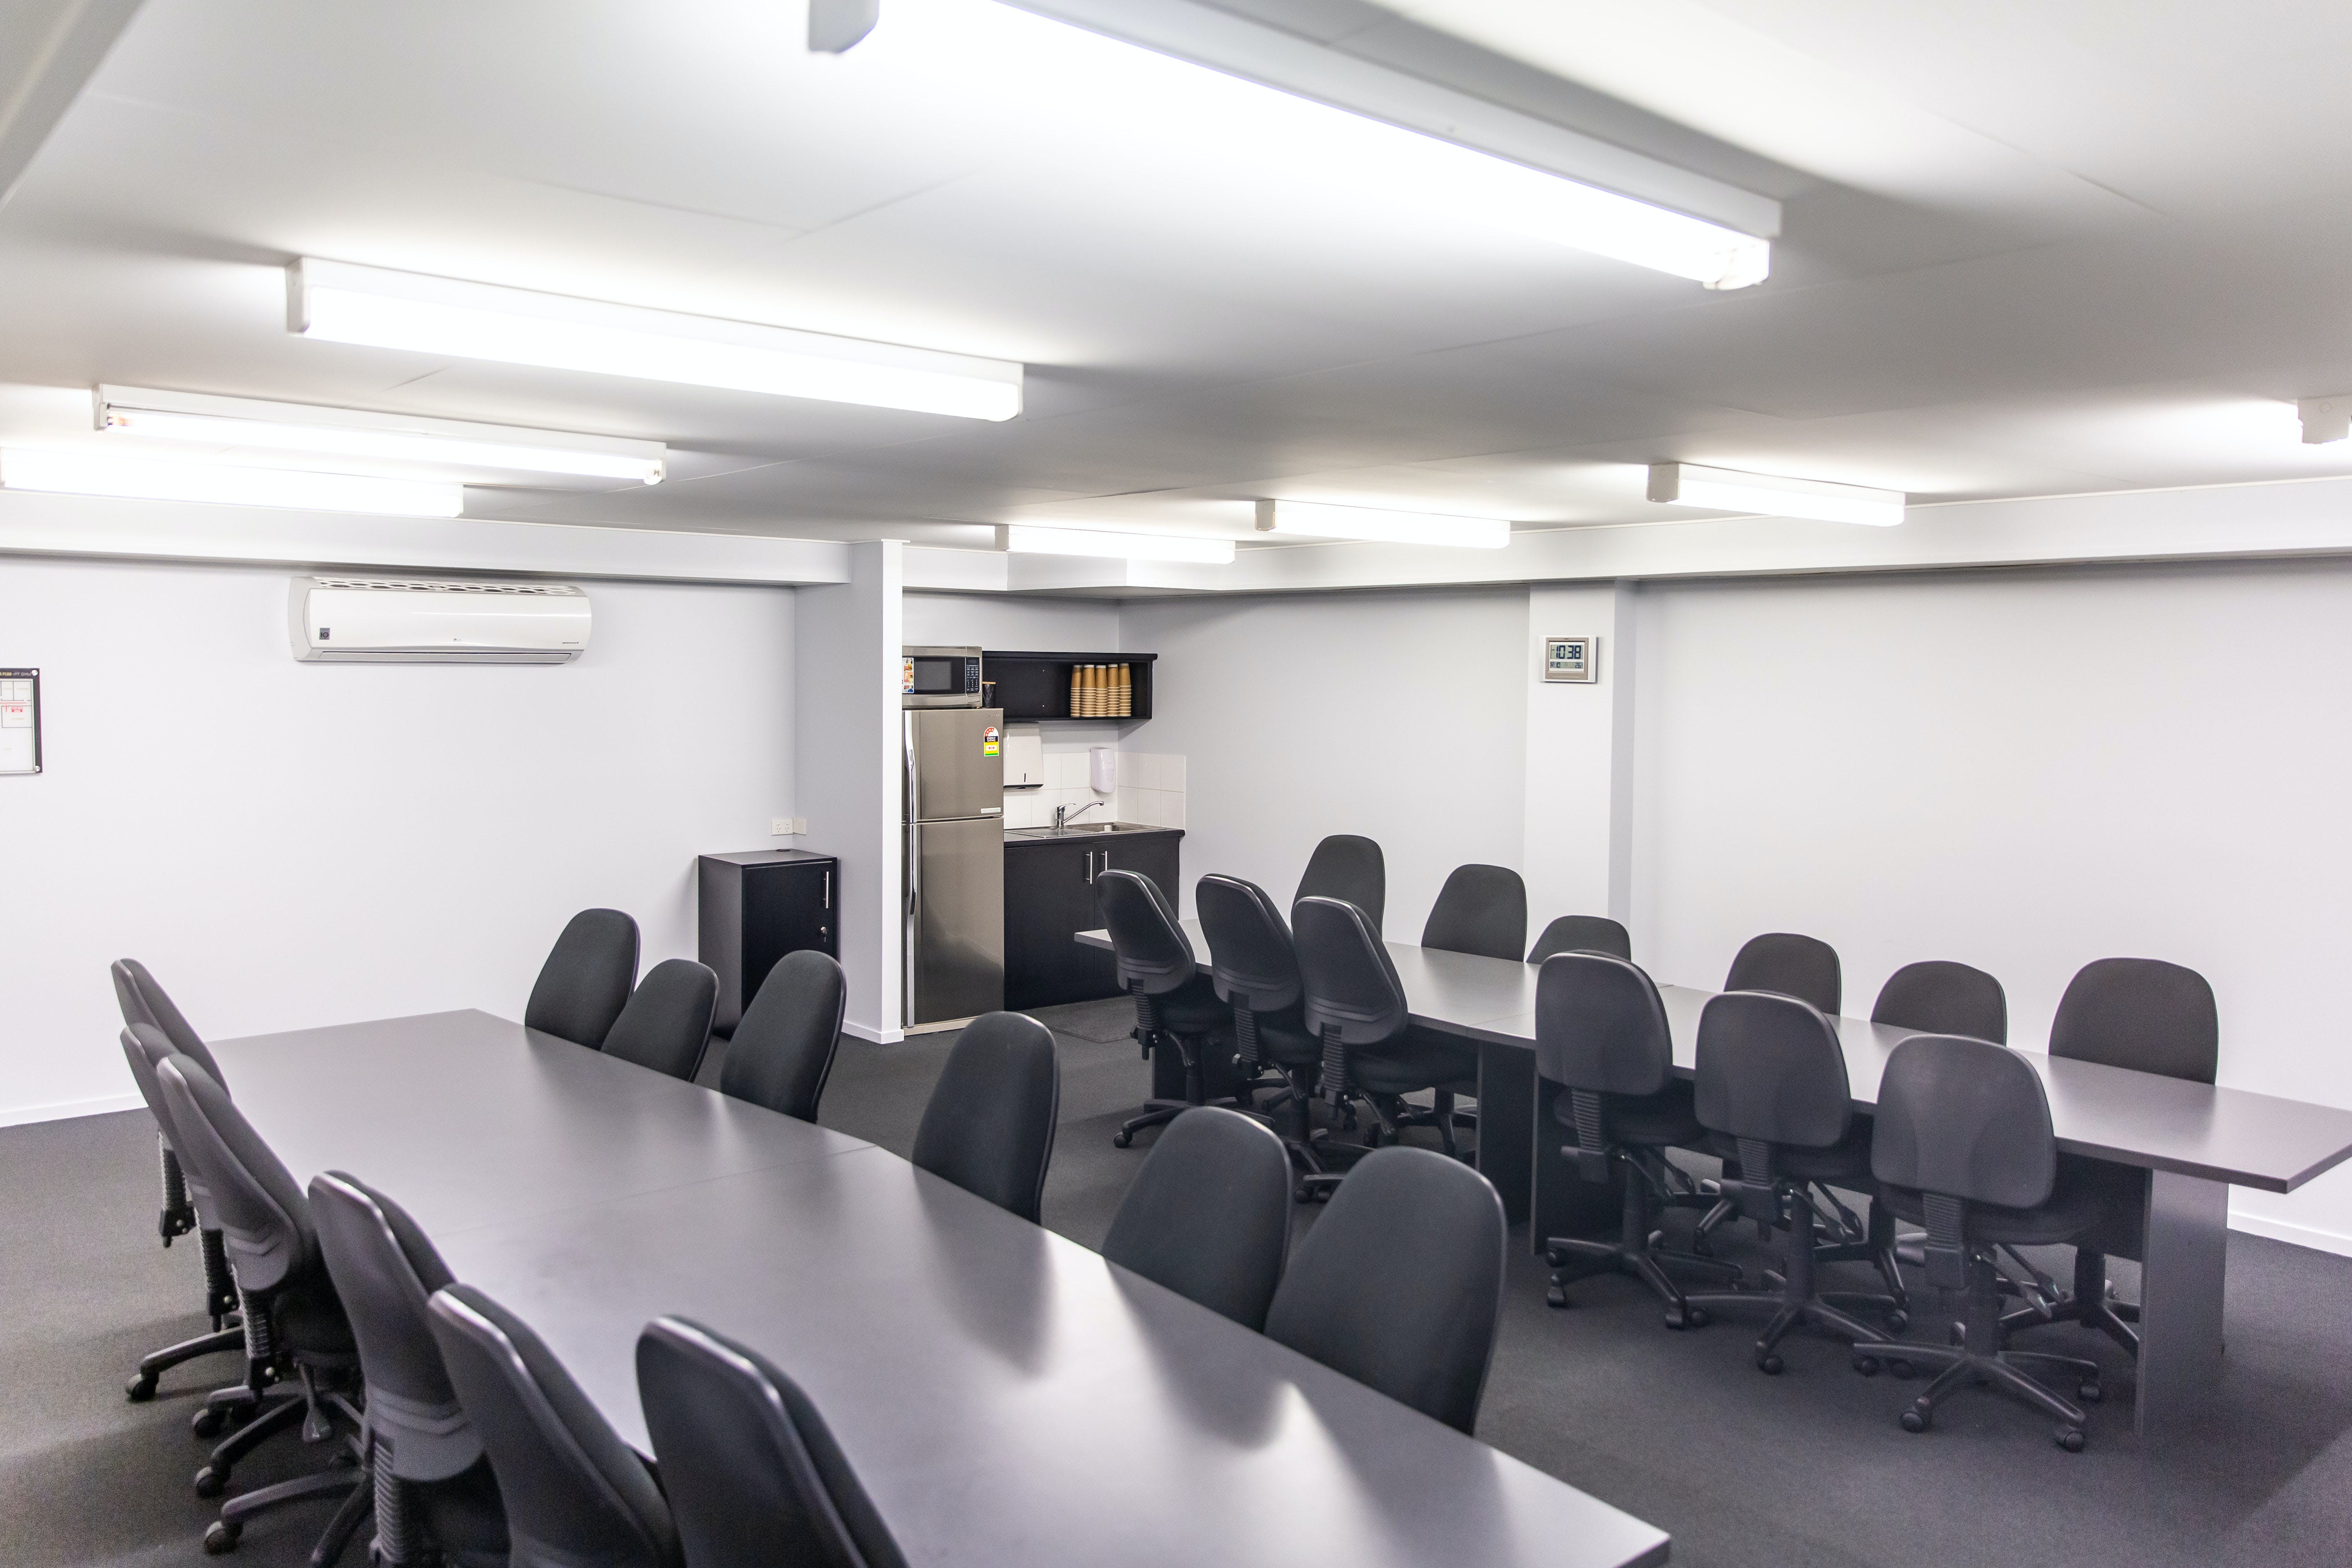 Classroom, training room at Human Performance Centre, image 4